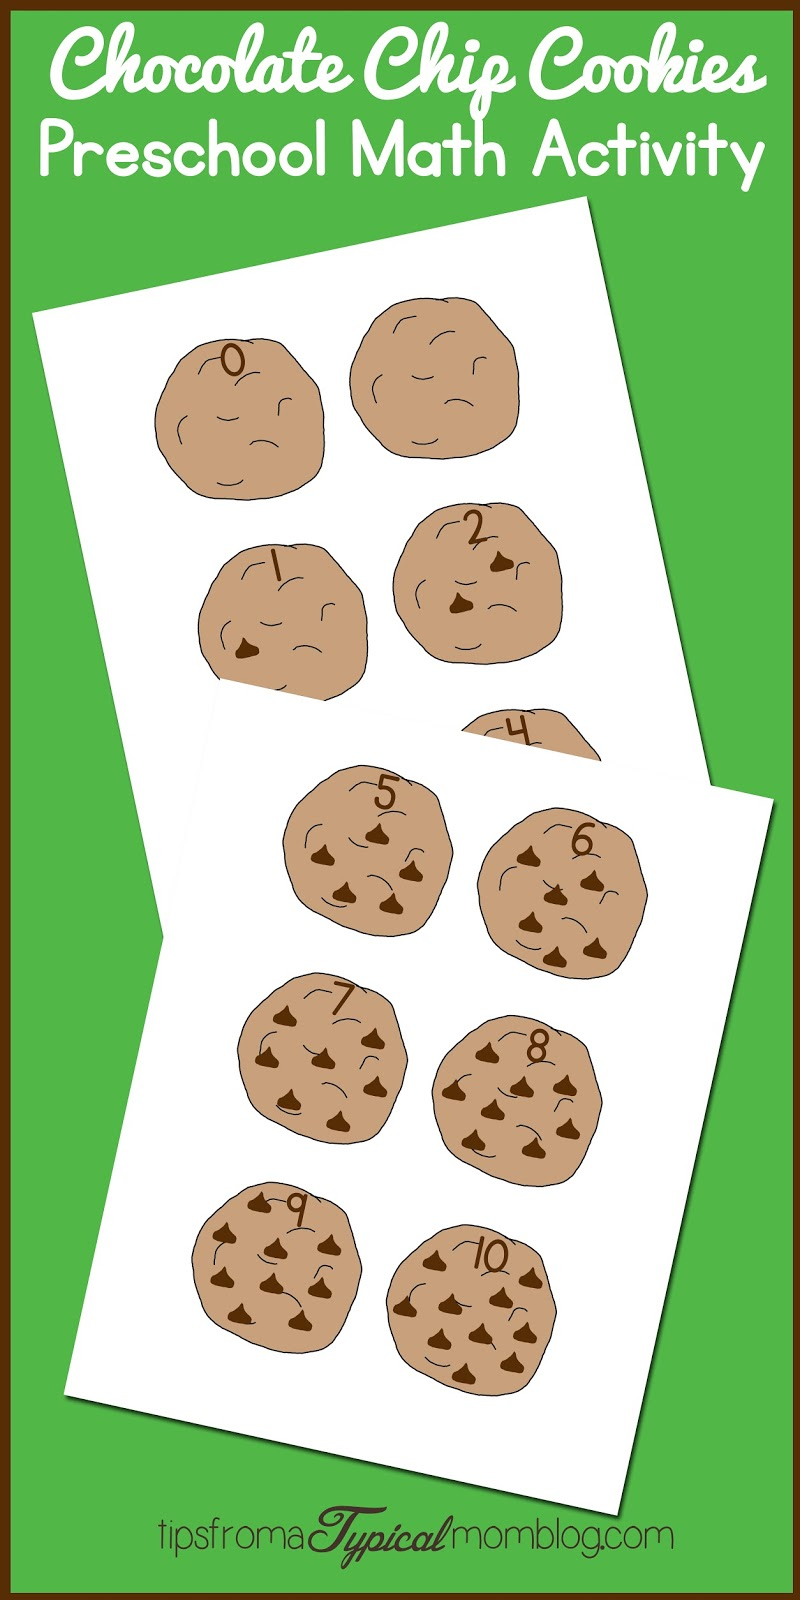 Perfect Chocolate Chip Cookie Recipe Math Activity If You Give – If You Give a Mouse a Cookie Worksheets